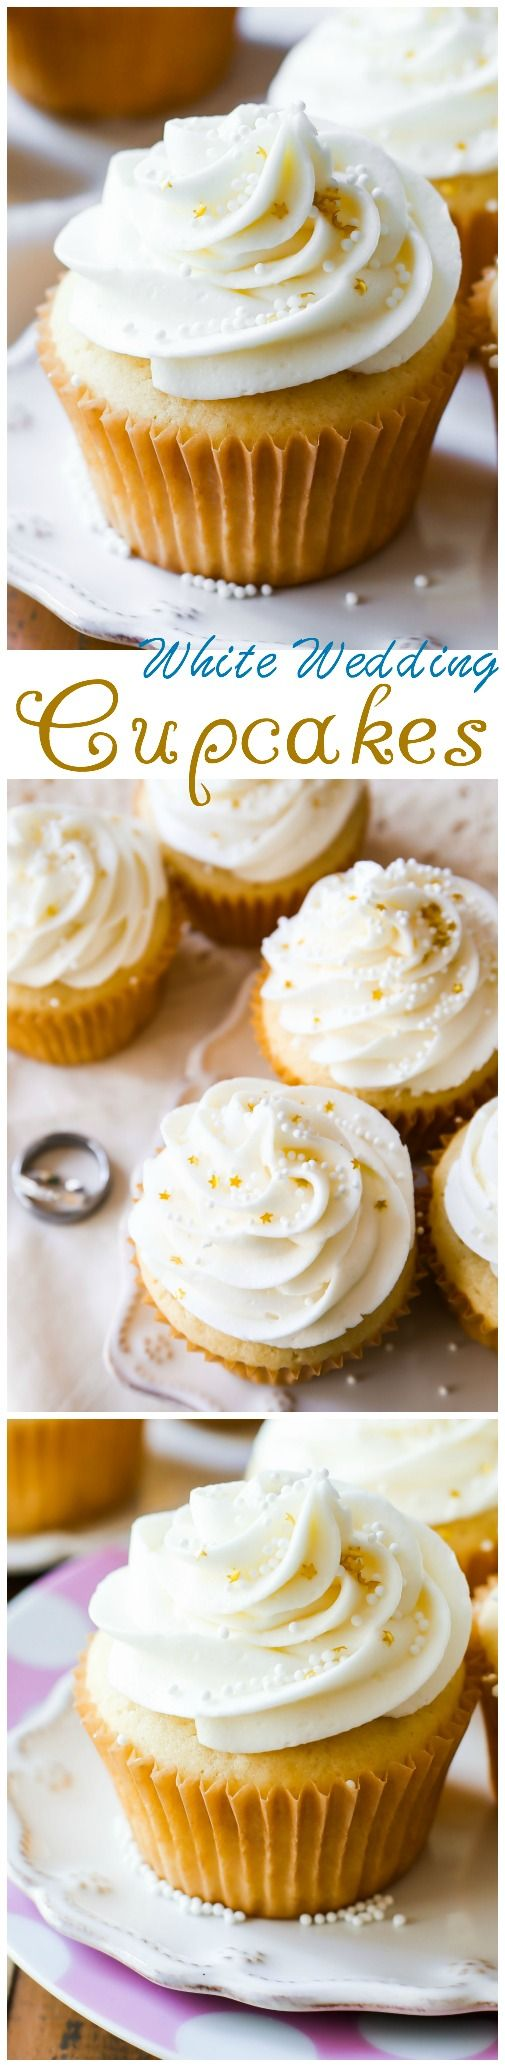 White Wedding Cupcakes - White chocolate, vanilla, and almond flavors come together in these truly elegant homemade wedding treats.